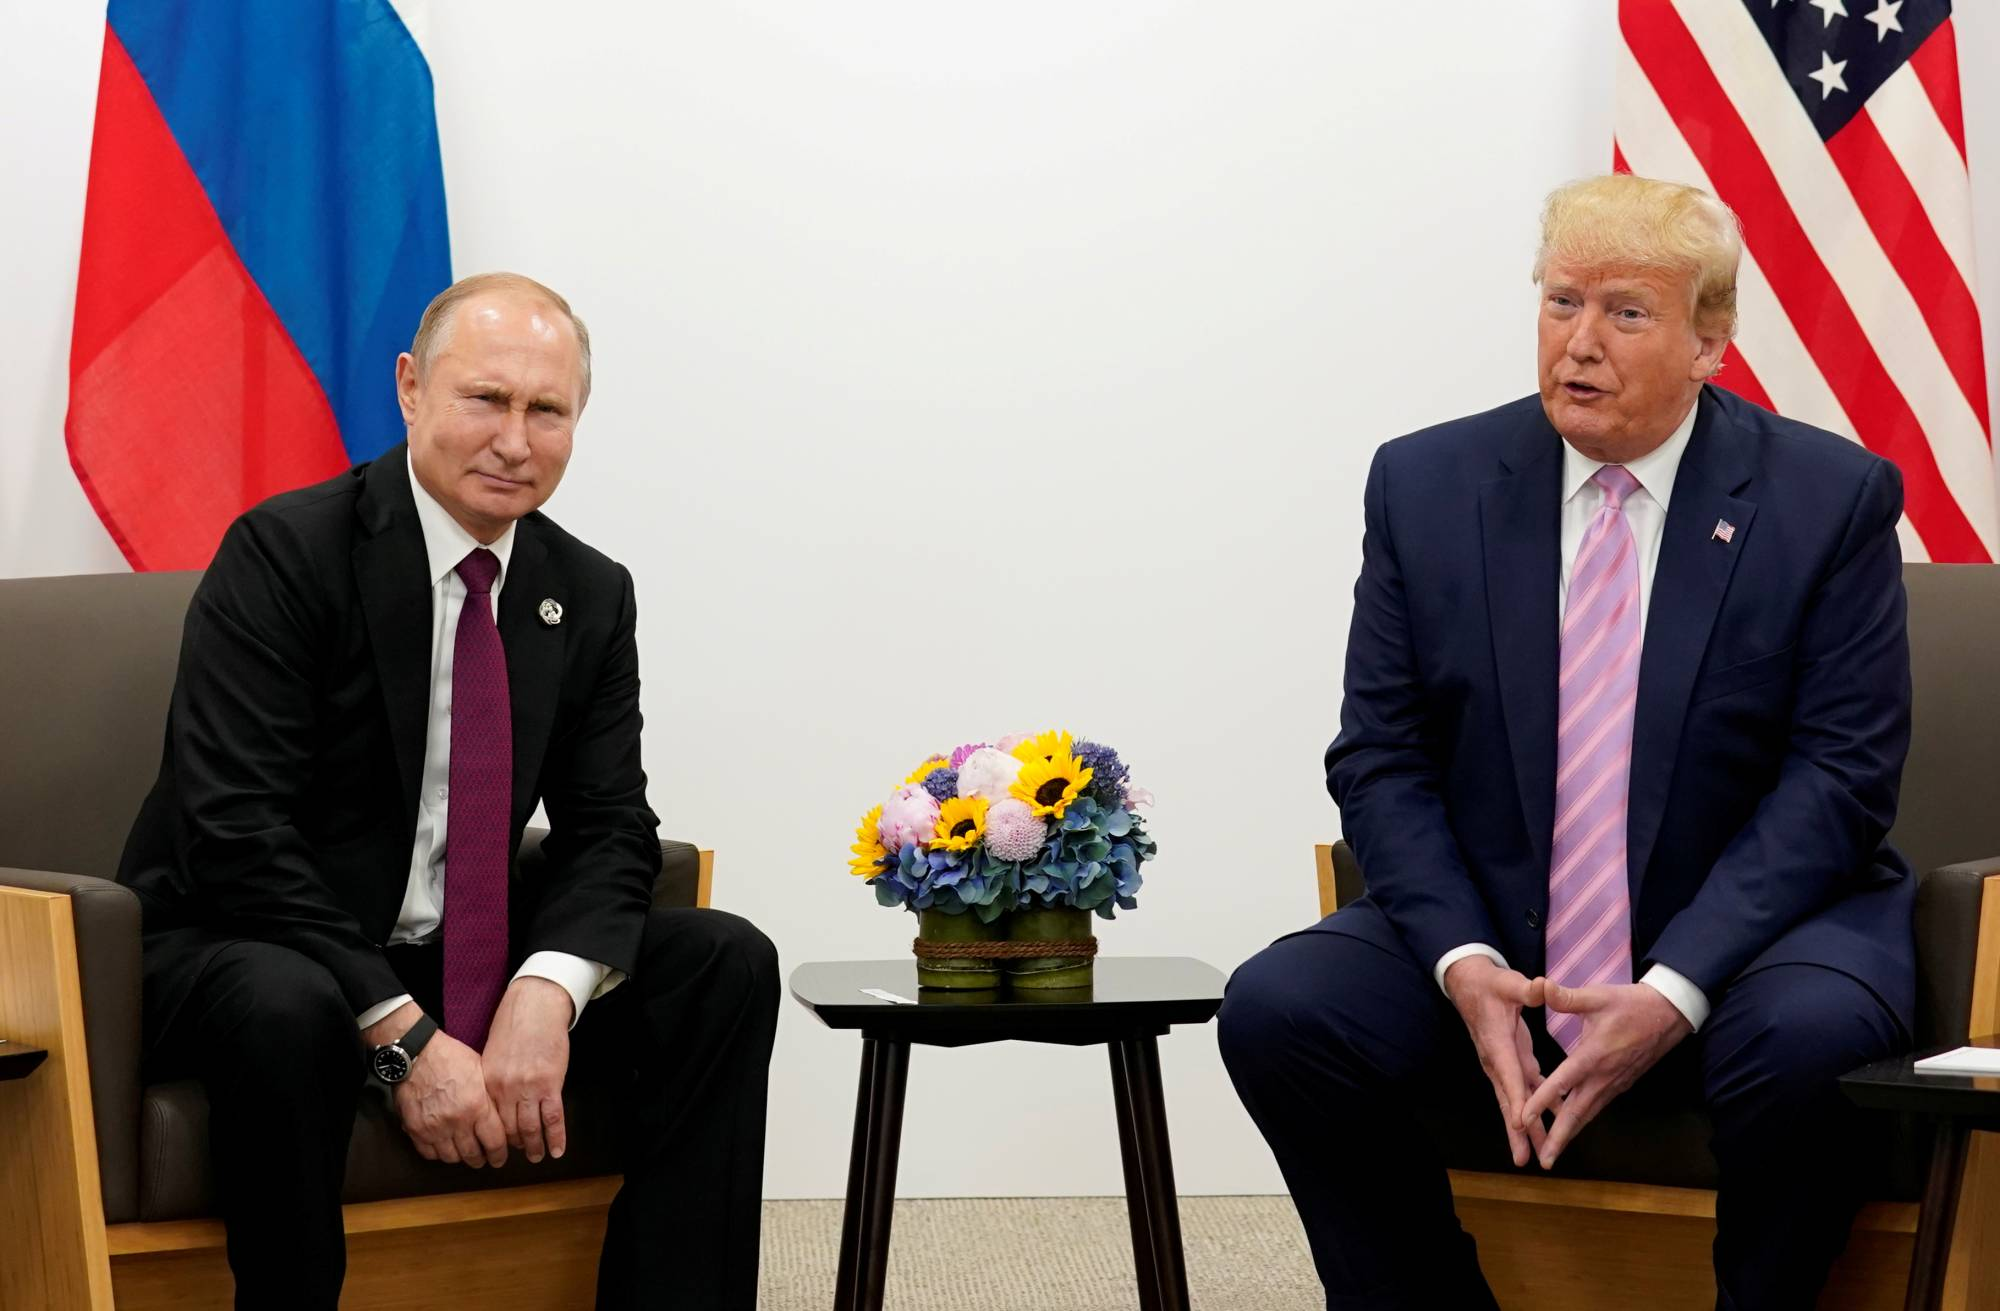 Critics consider U.S. President Donald Trump and his Russian counterpart Vladimir Putin to be populist and divisive. | REUTERS